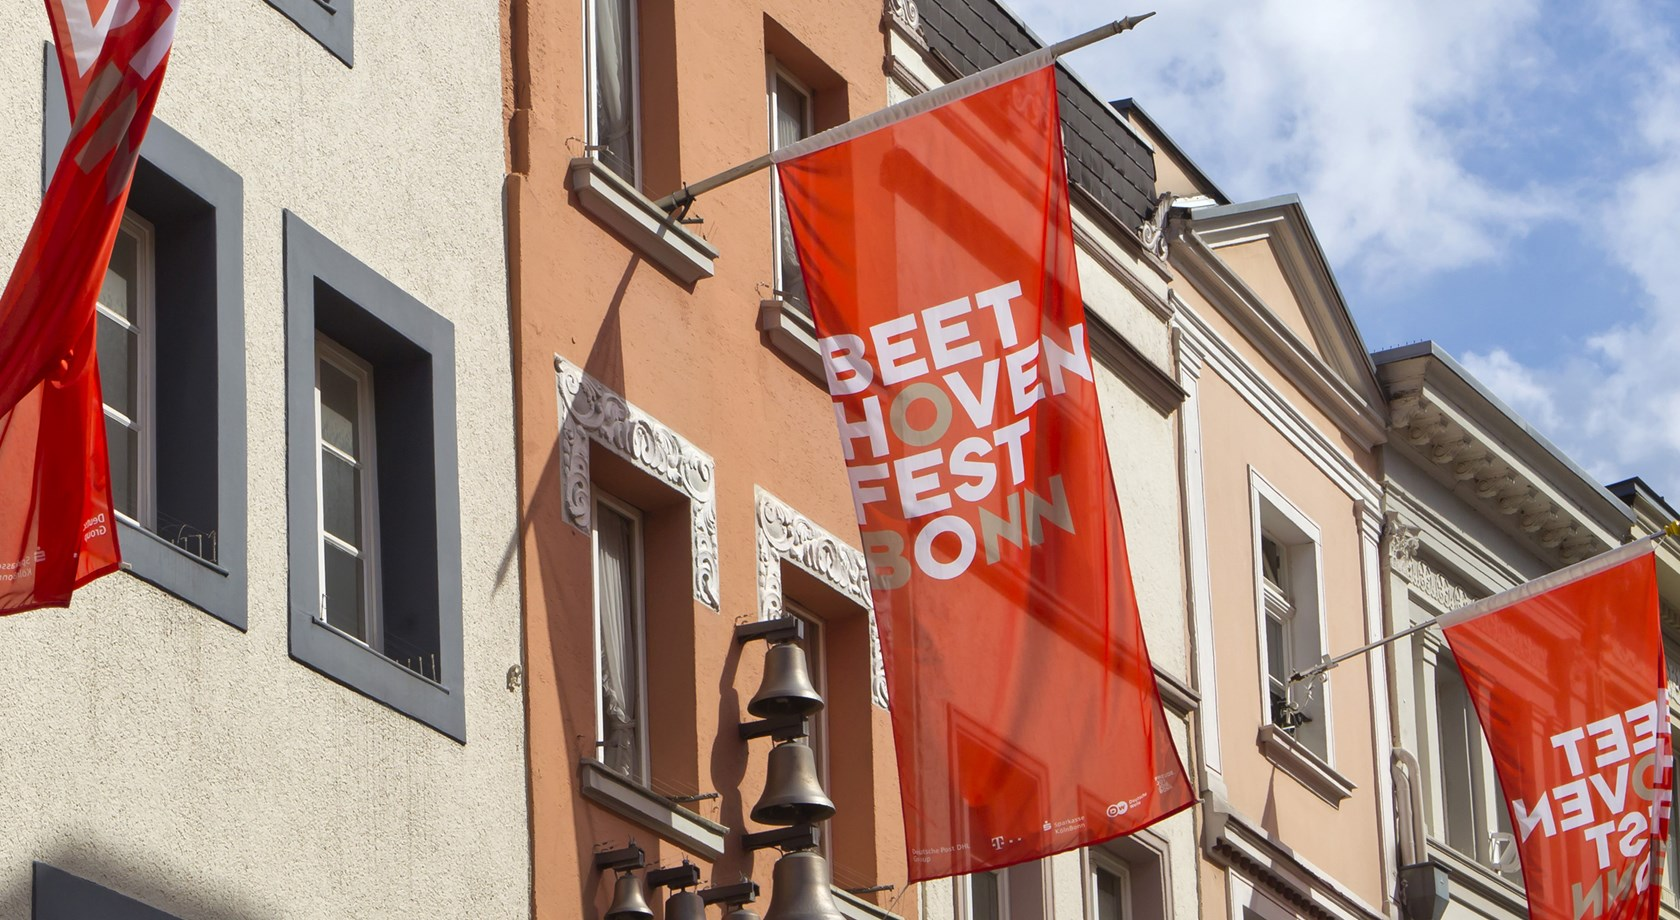 Beethovenfest 2018